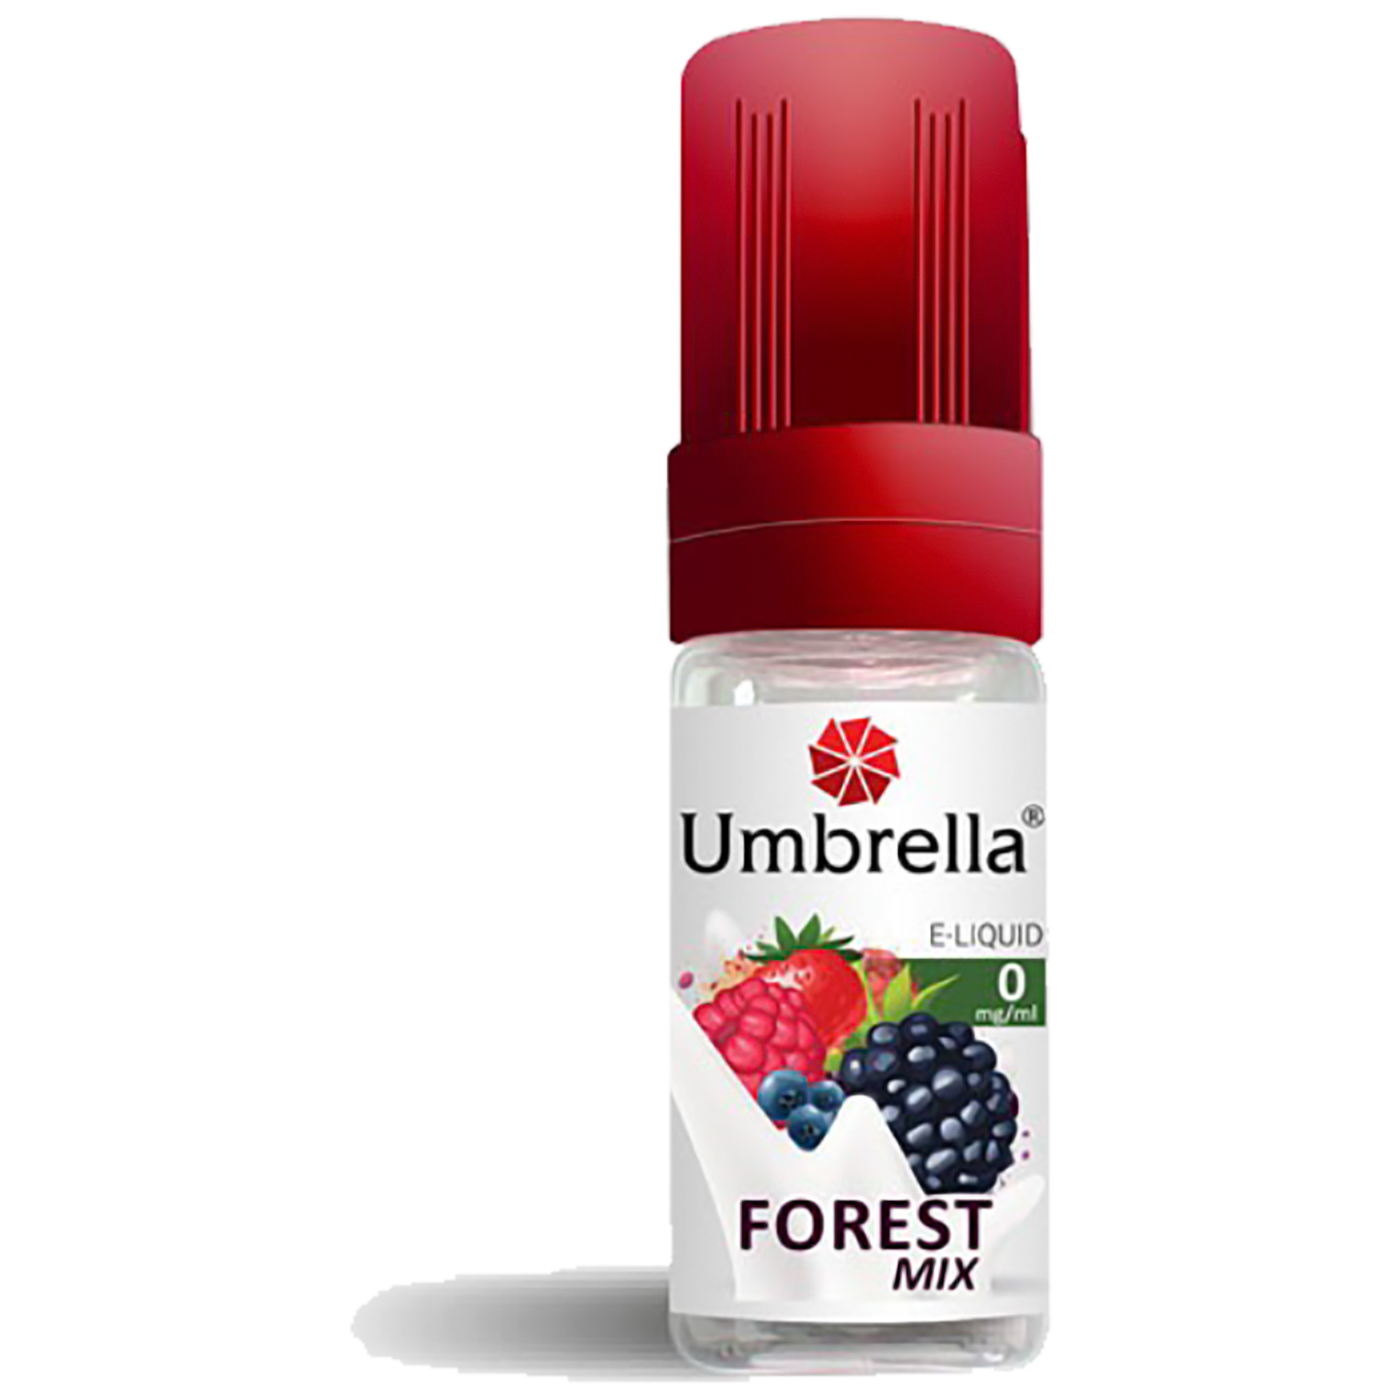 Umbrella - Forest Mix Tobacco 9mg